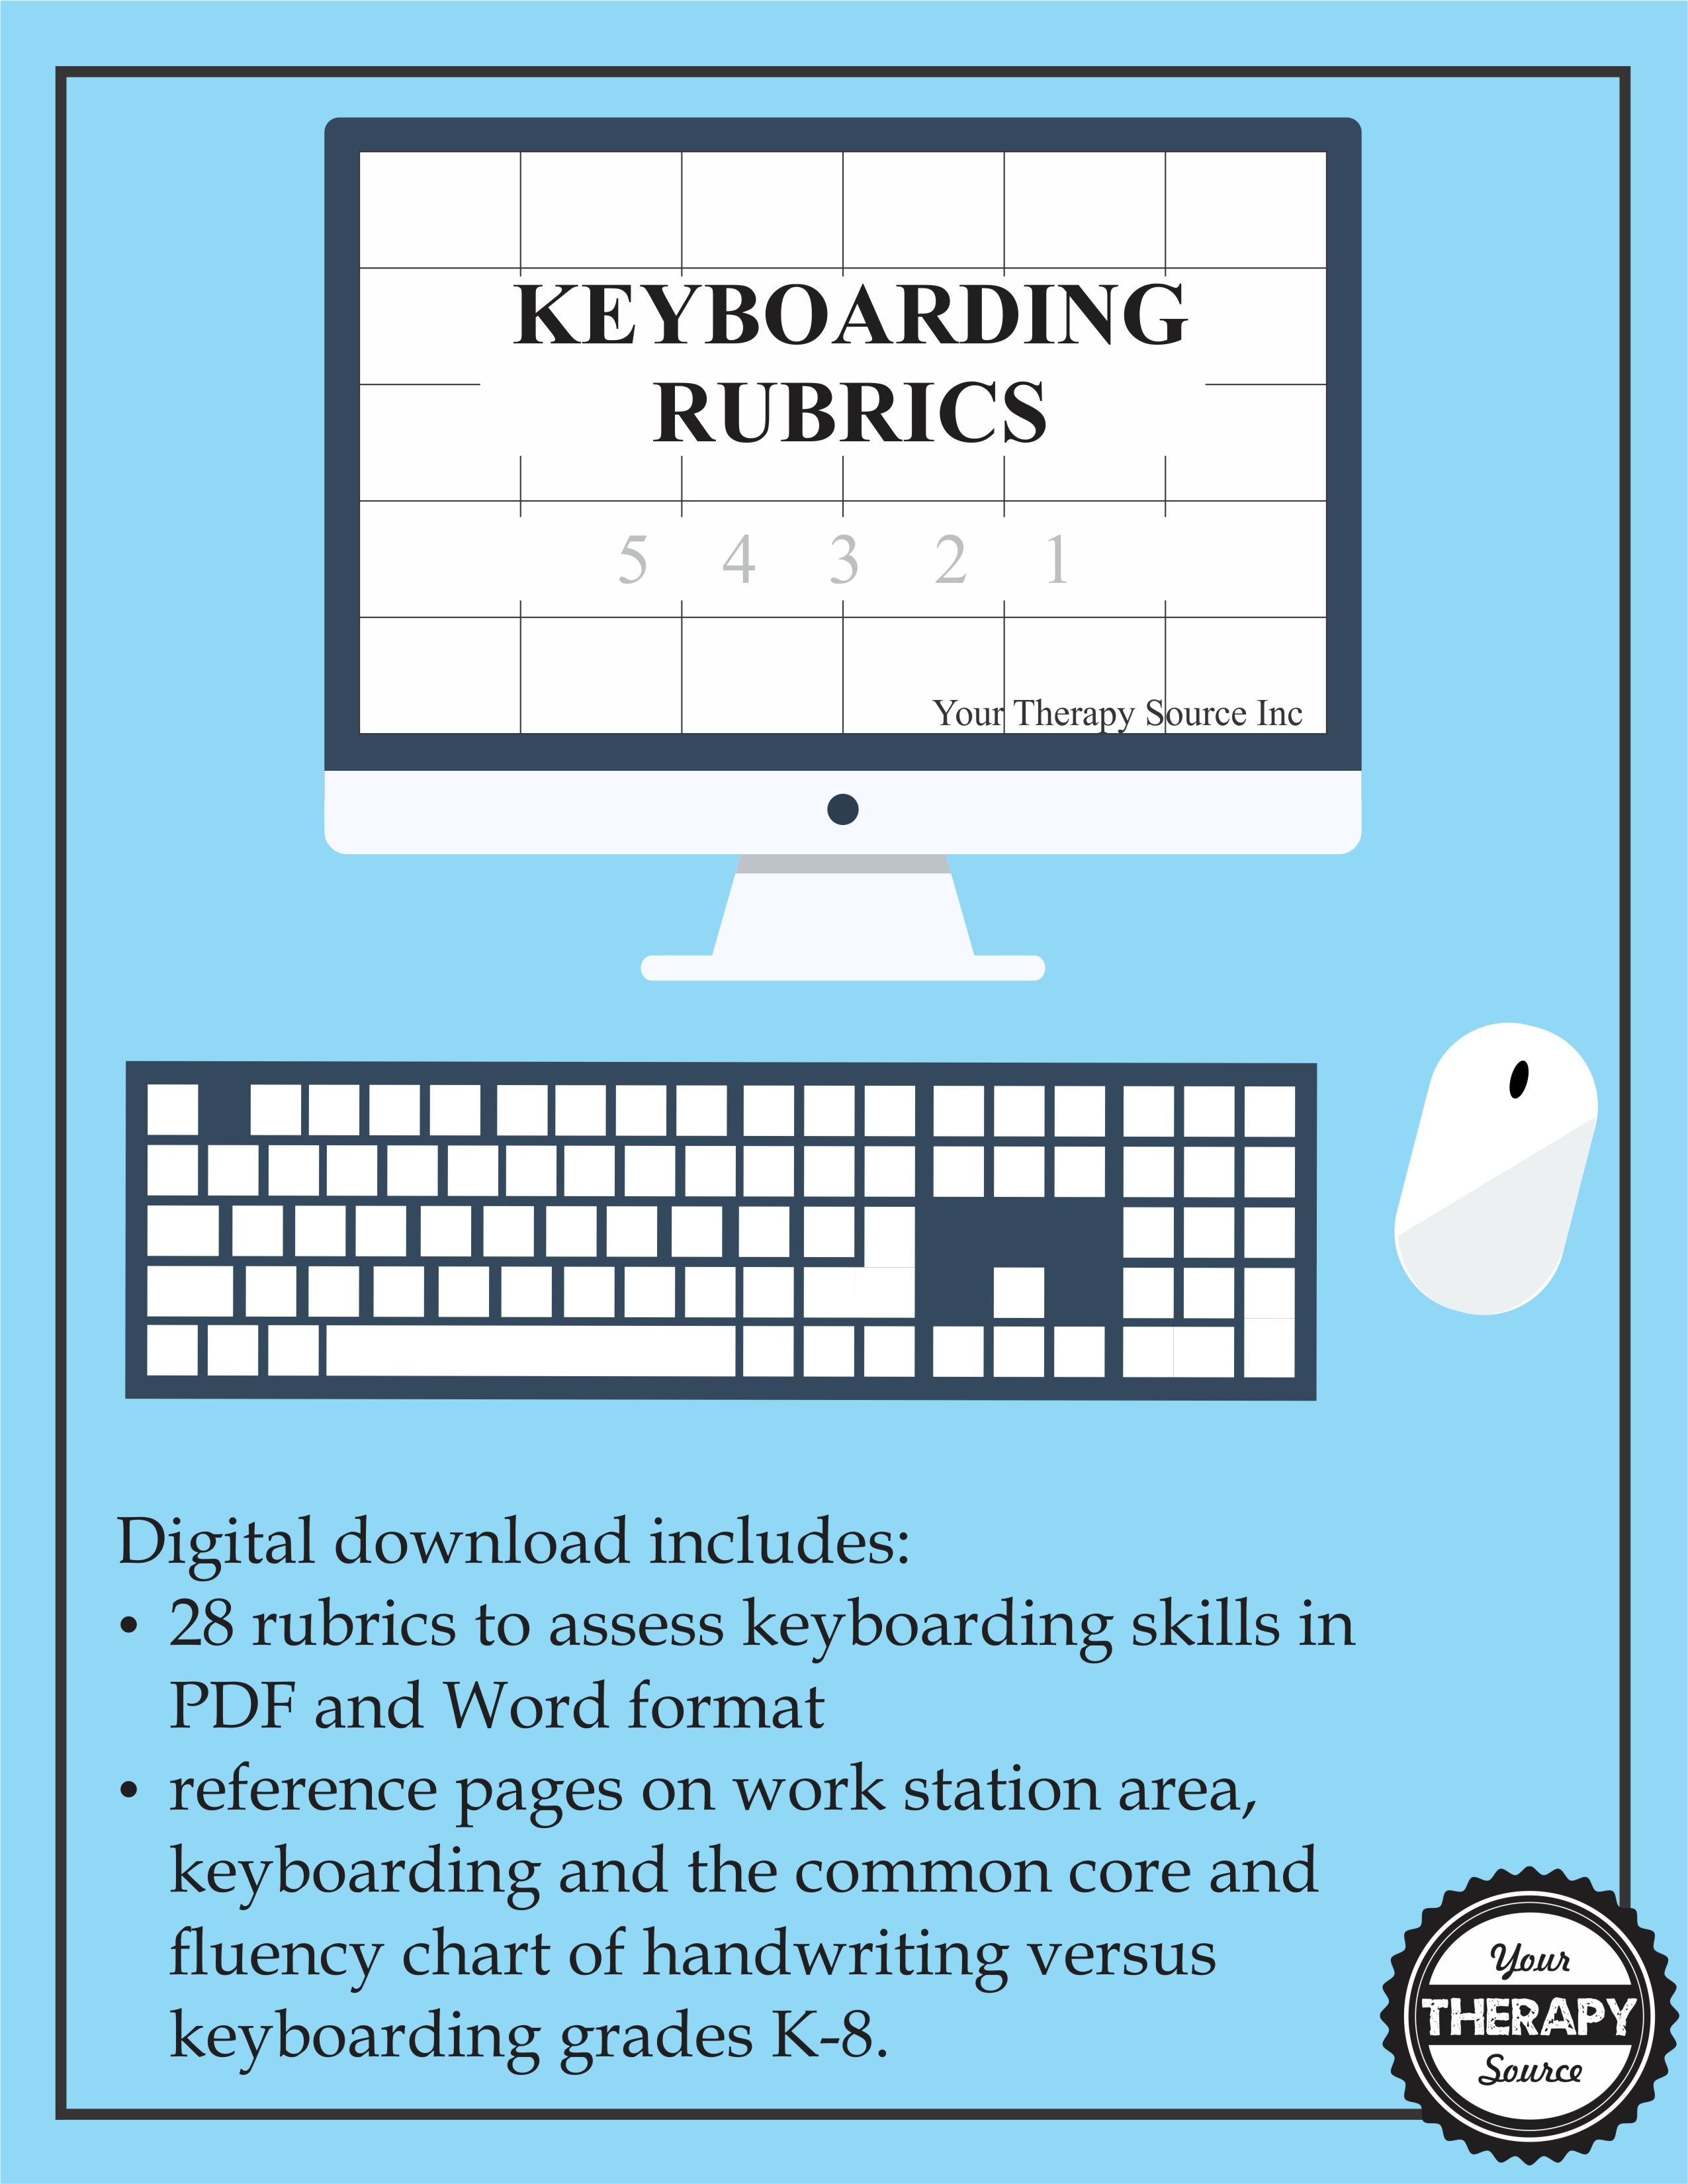 Keyboarding Rubrics from Your Therapy Source Inc